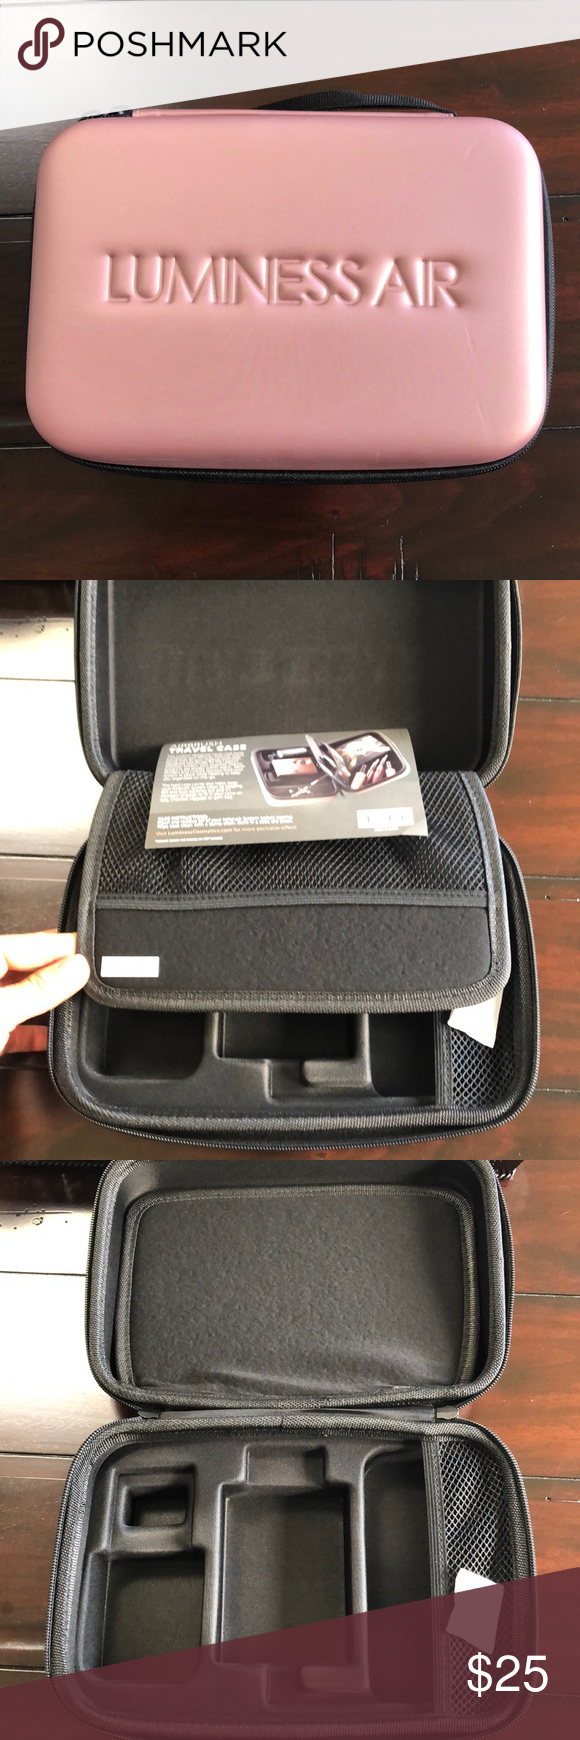 Airbrush Travel Case for Legend System Travel case